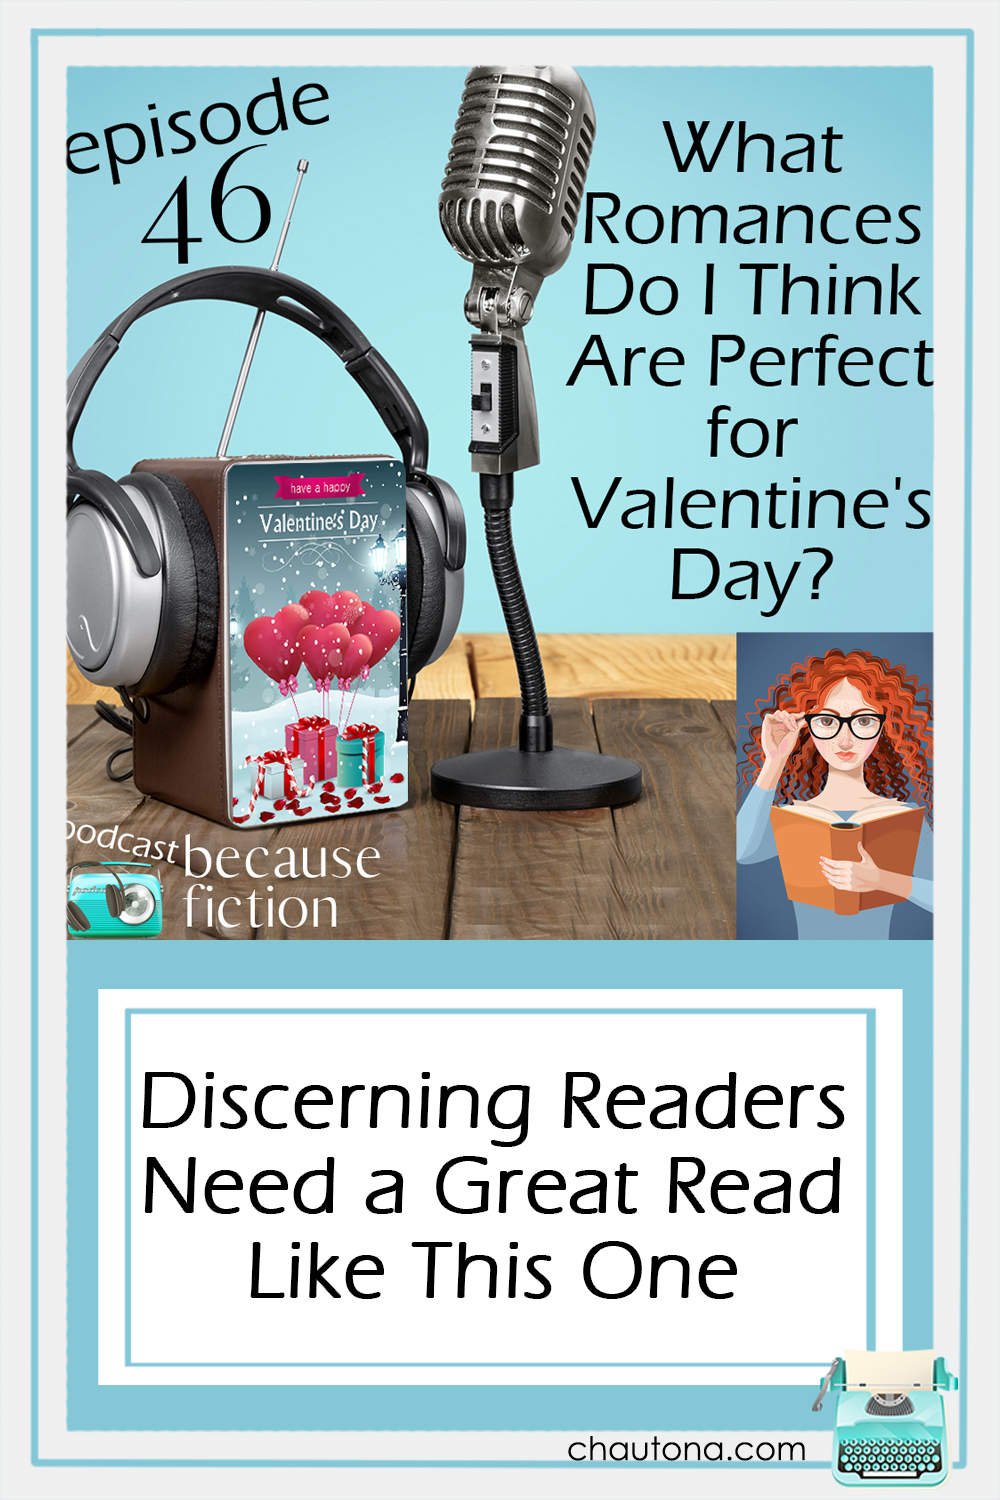 Valentine's Day is the perfect time to curl up with a nice romantic book and escape into a world of happily-ever-afters. But which one?? via @chautonahavig